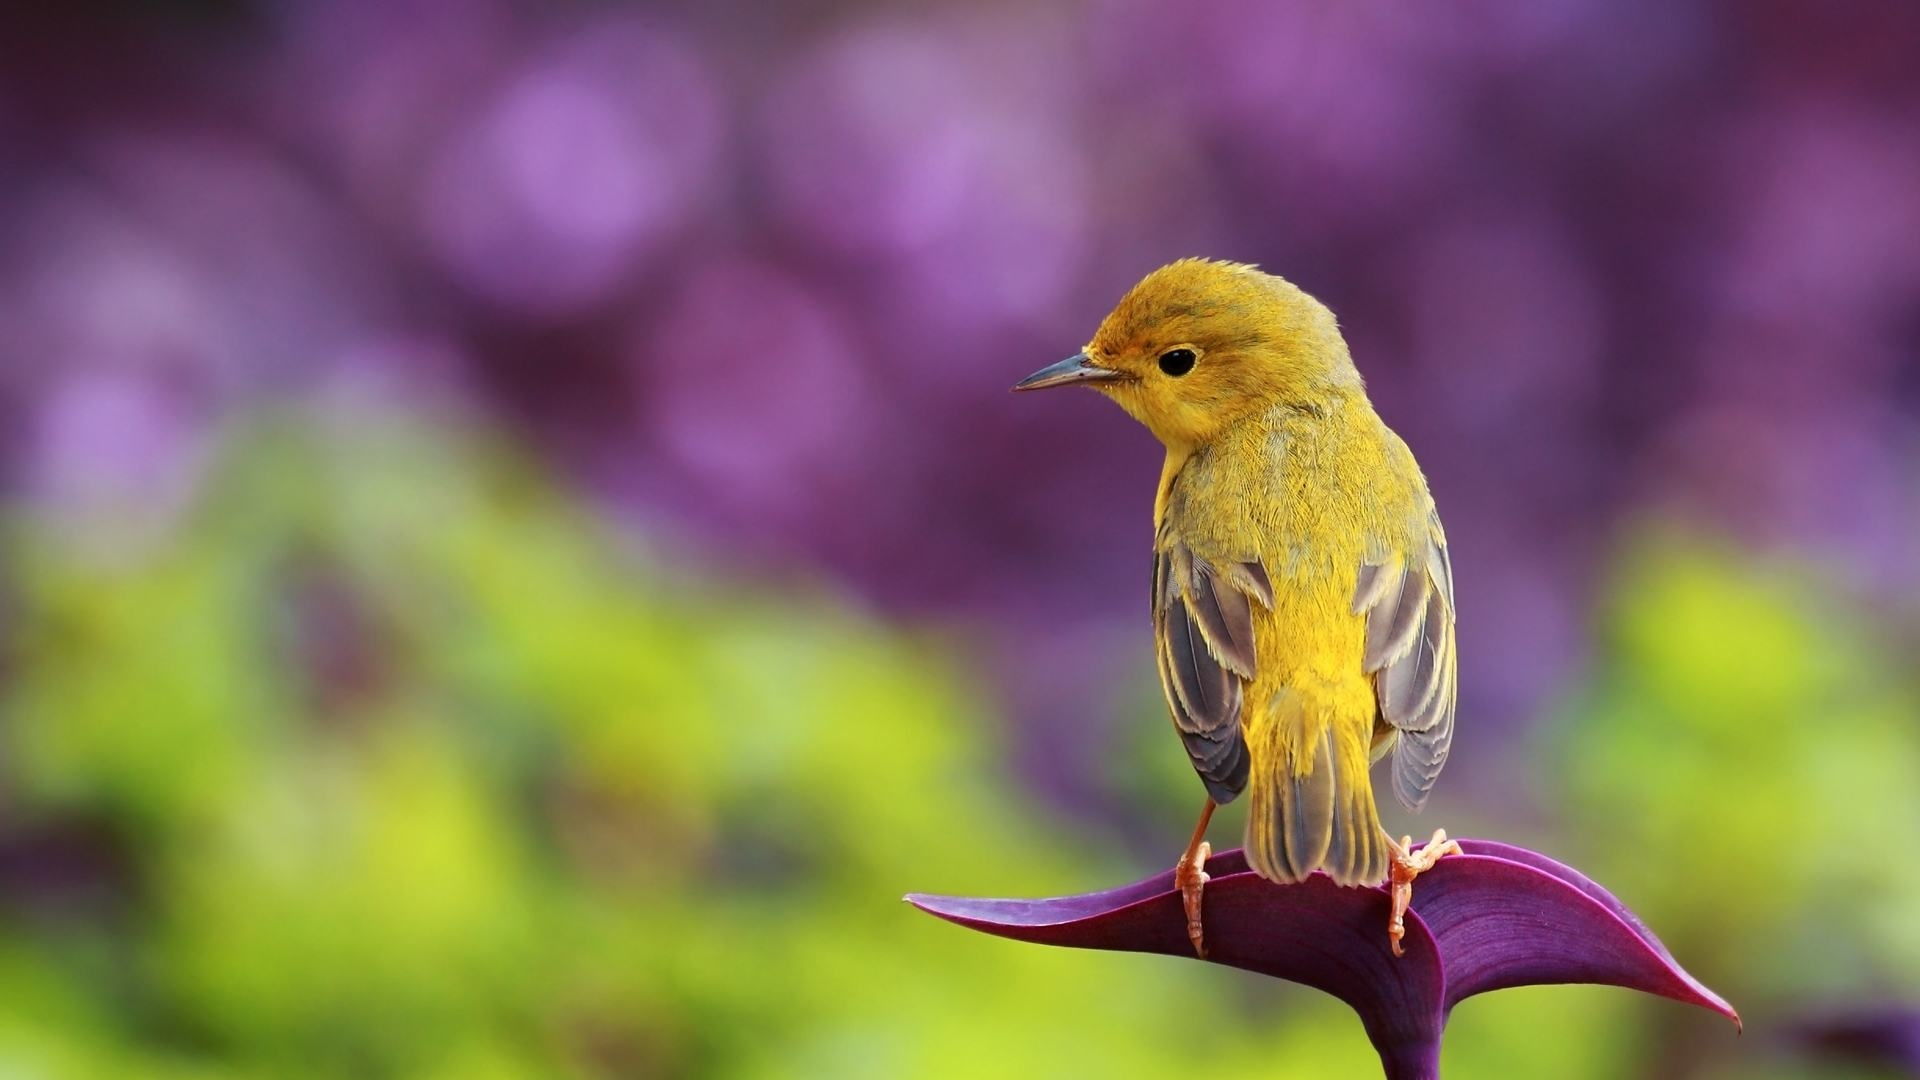 Wallpapers Backgrounds   eye catching birds wallpapers picsnwall 1920x1080